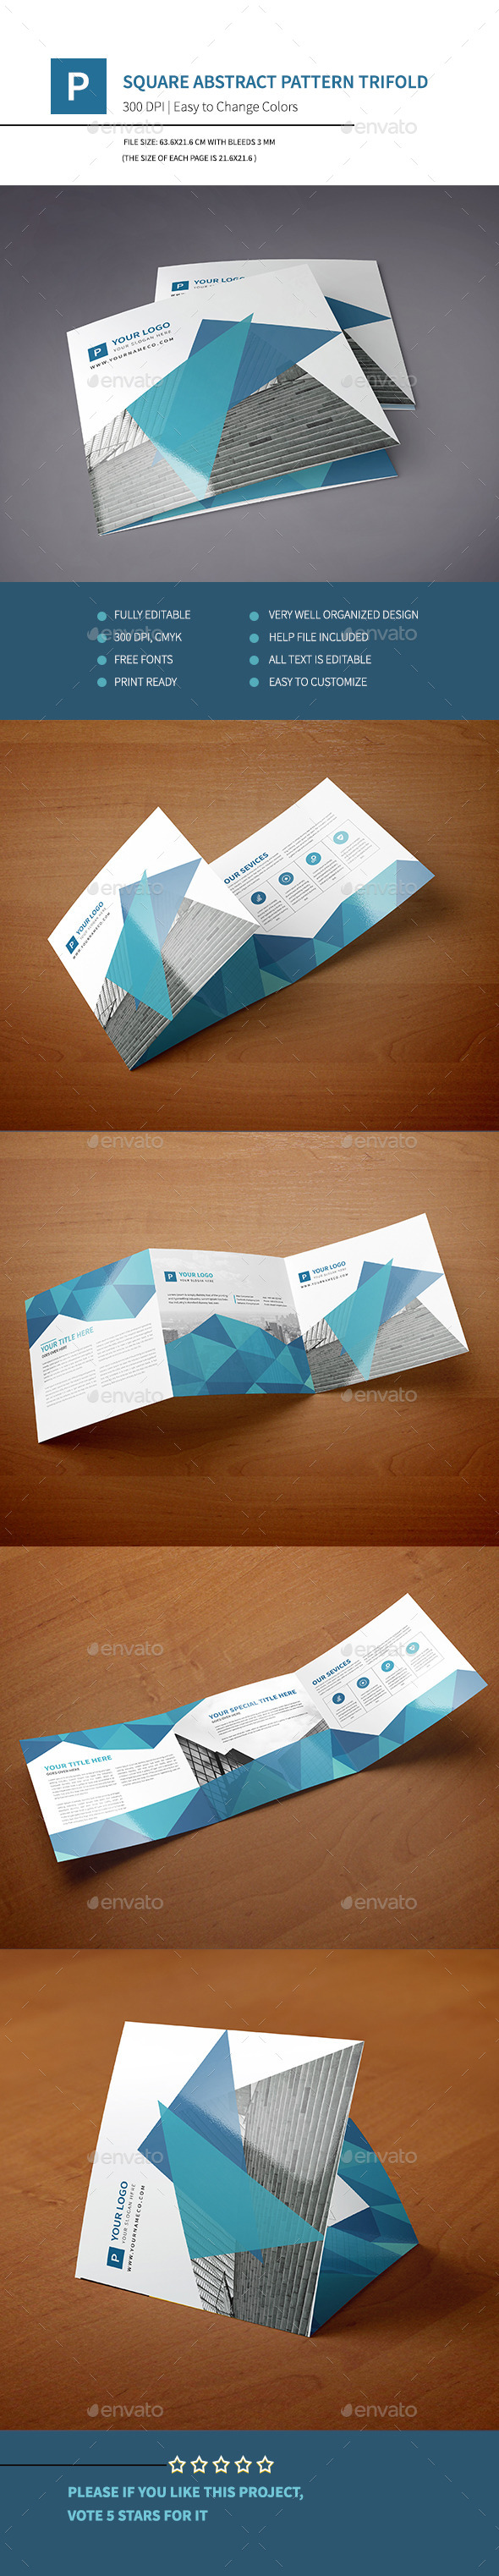 Square Abstract Pattern Trifold II - Corporate Brochures